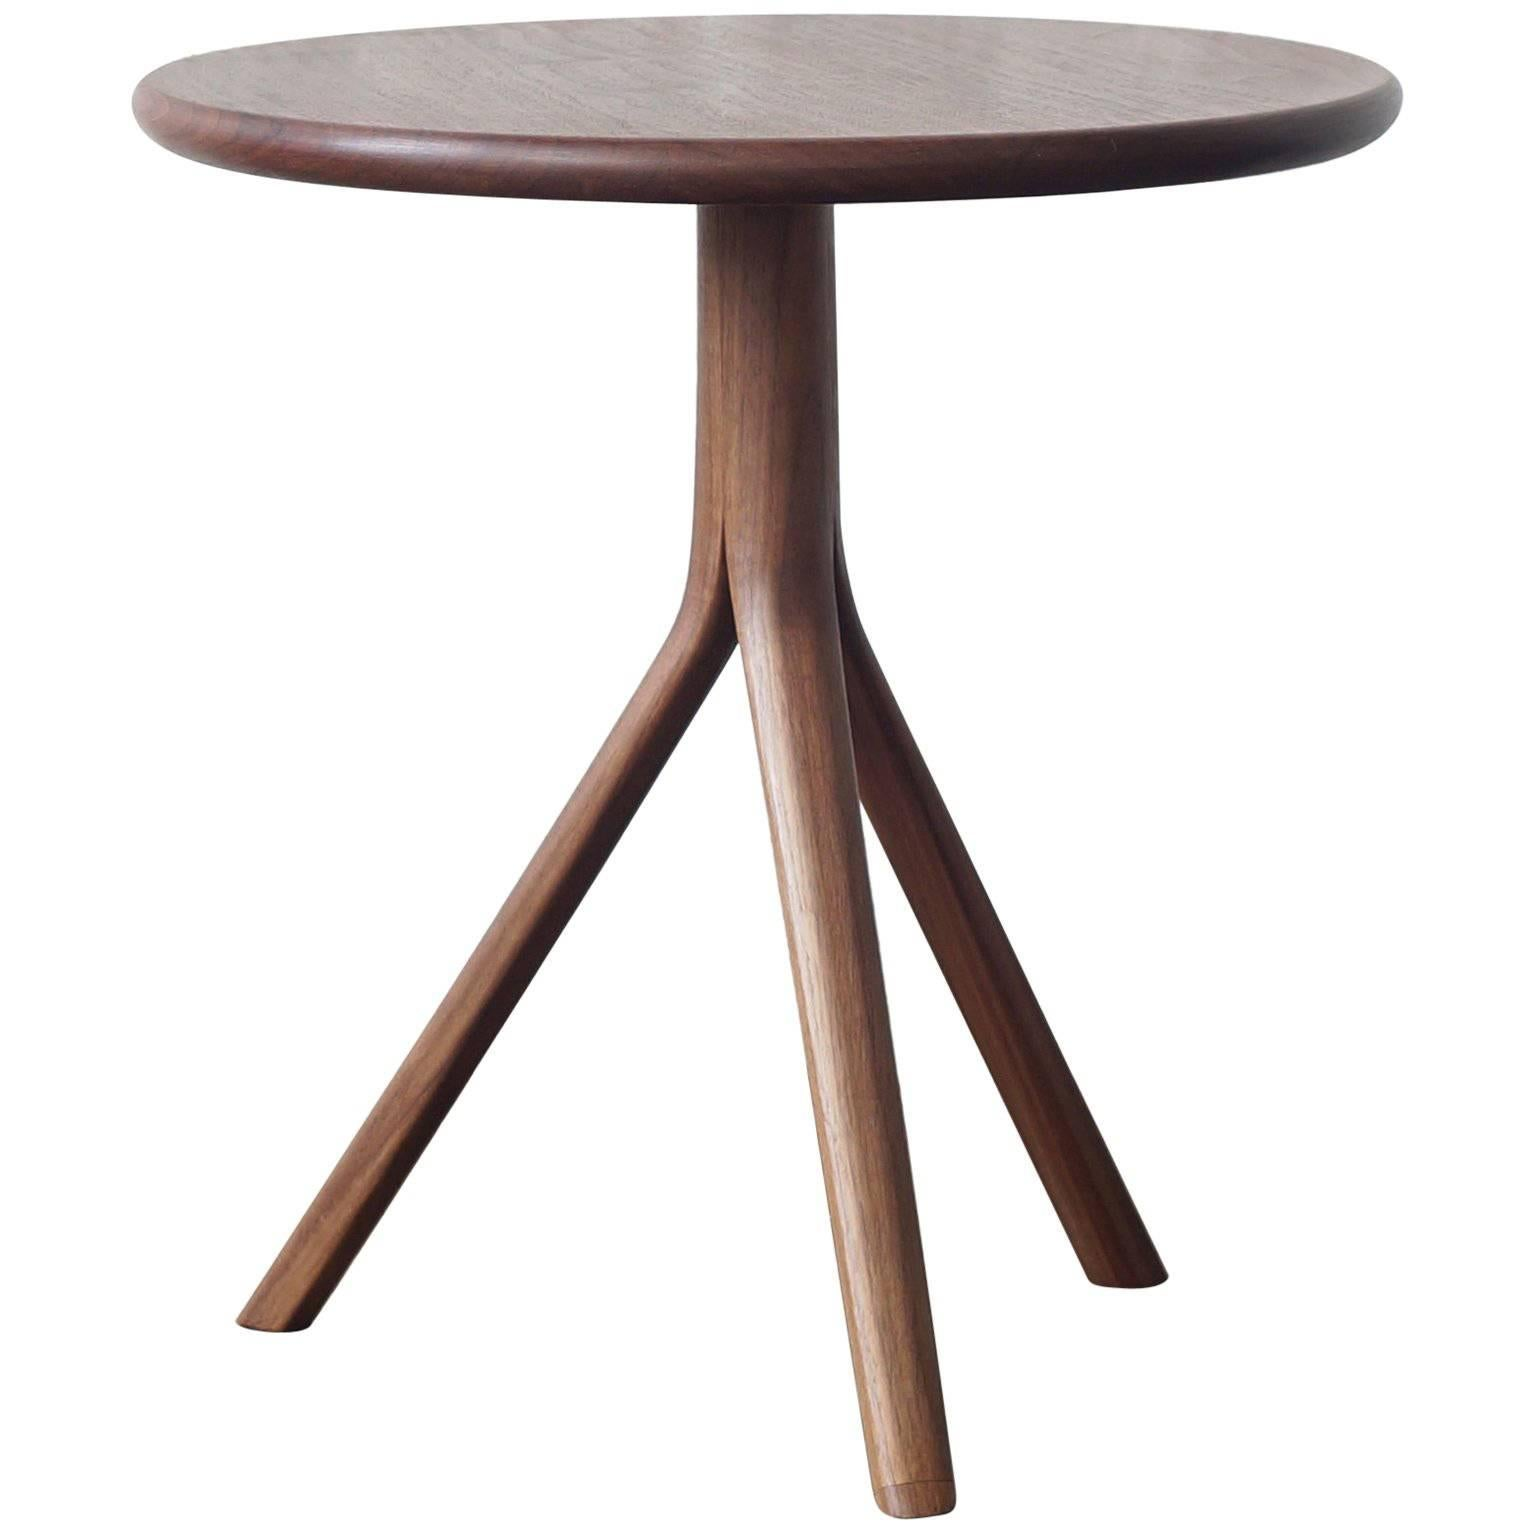 T07 Contemporary Side Table With Steam Bent Legs By Jason Lewis Furniture